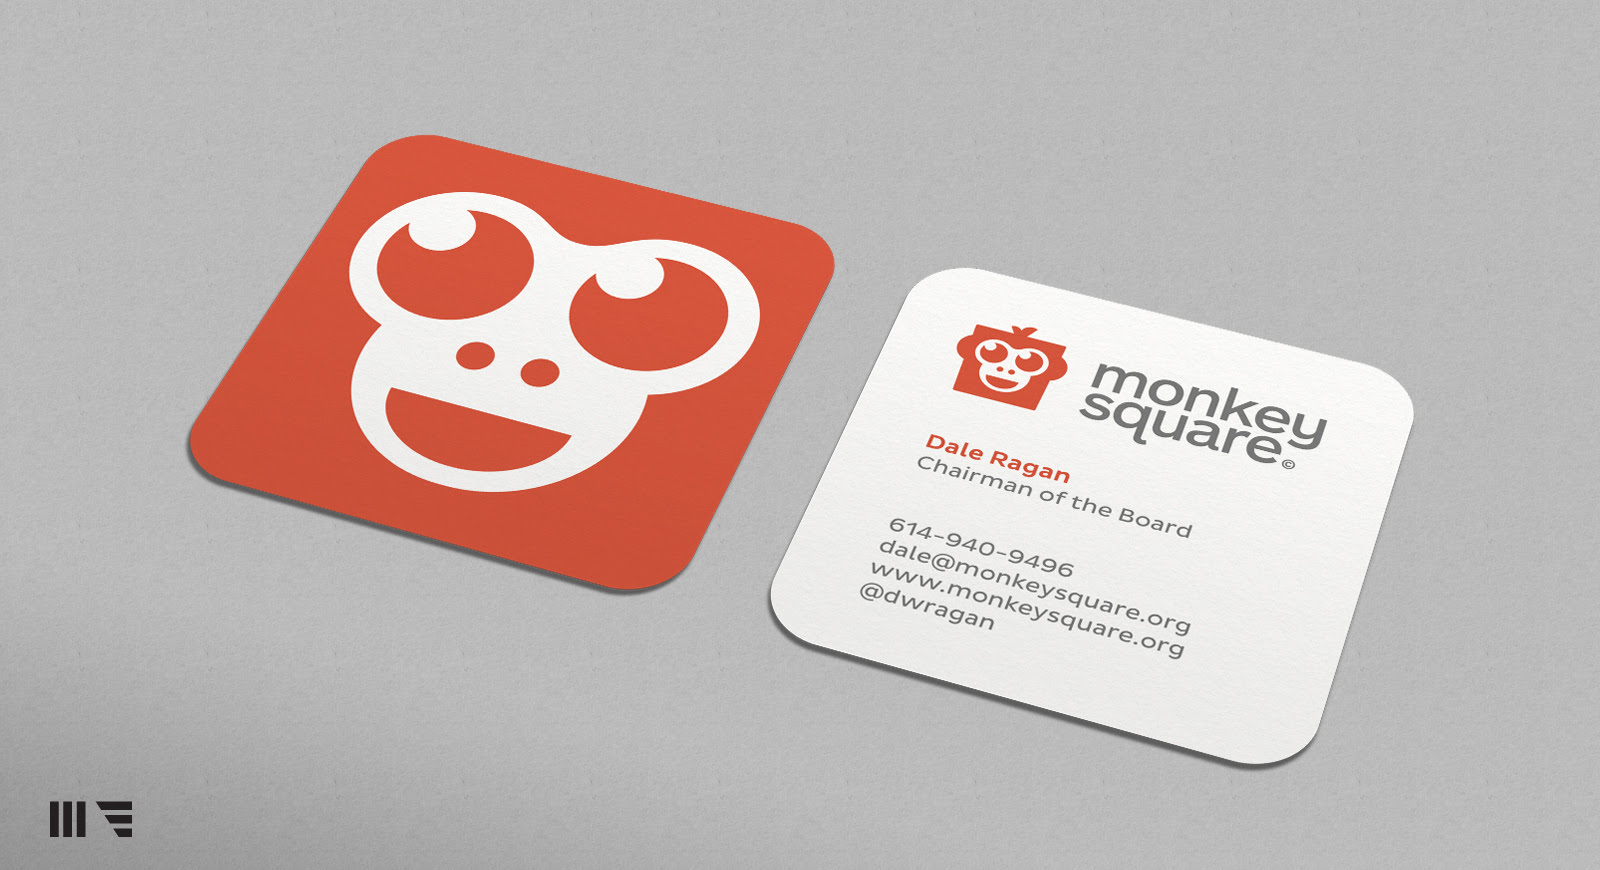 18 Unique Rounded Corner Business Cards - 1800Postcards Blog